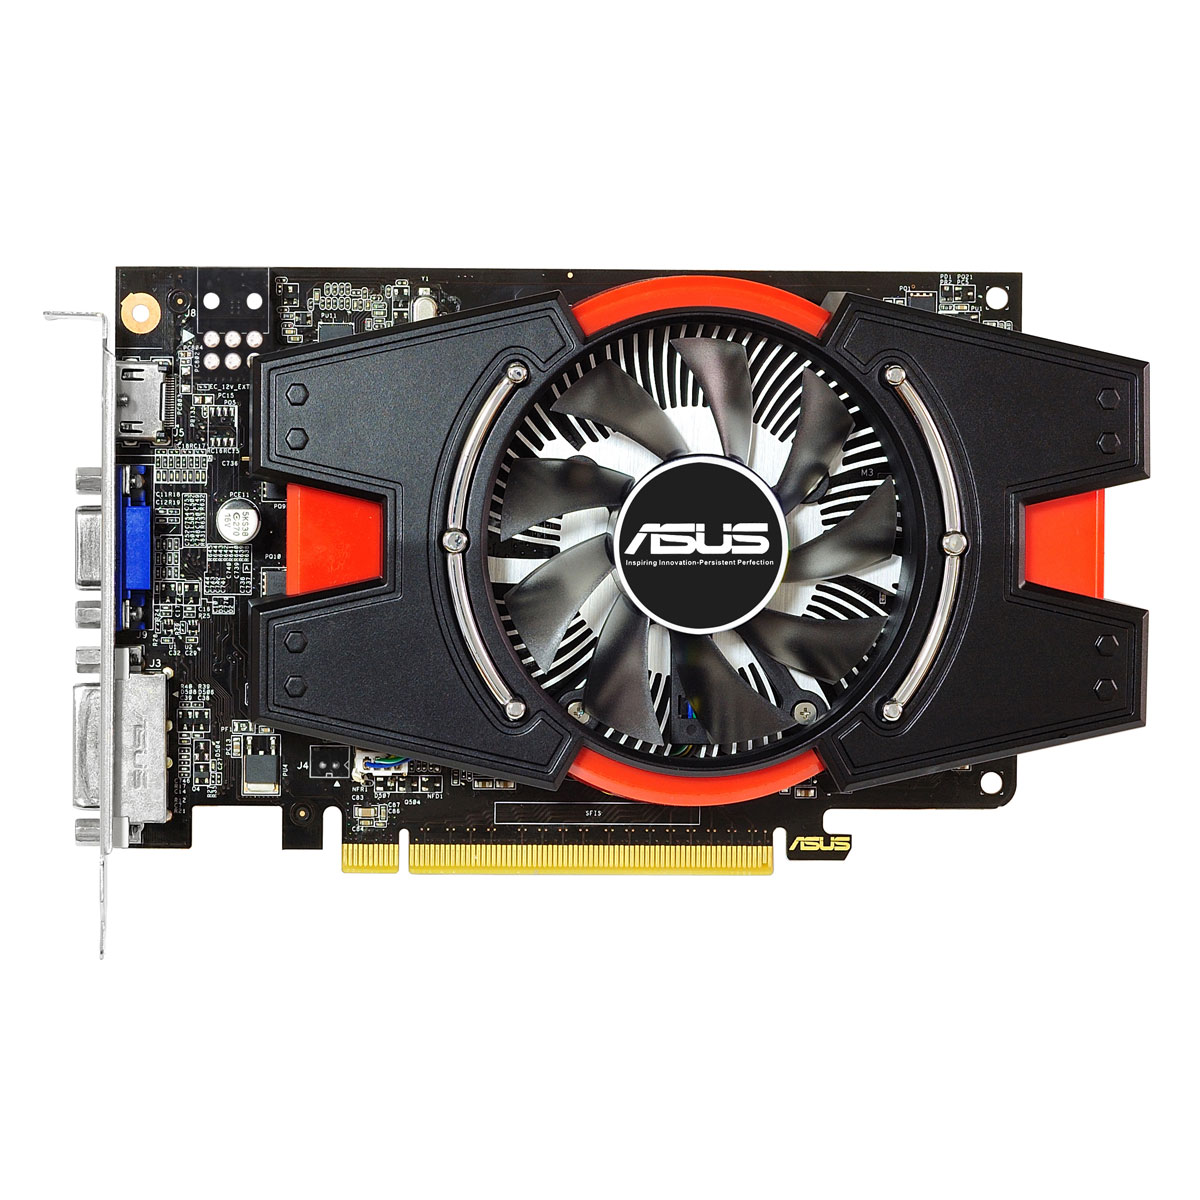 asus geforce gtx650 e 2gd5 carte graphique asus sur. Black Bedroom Furniture Sets. Home Design Ideas